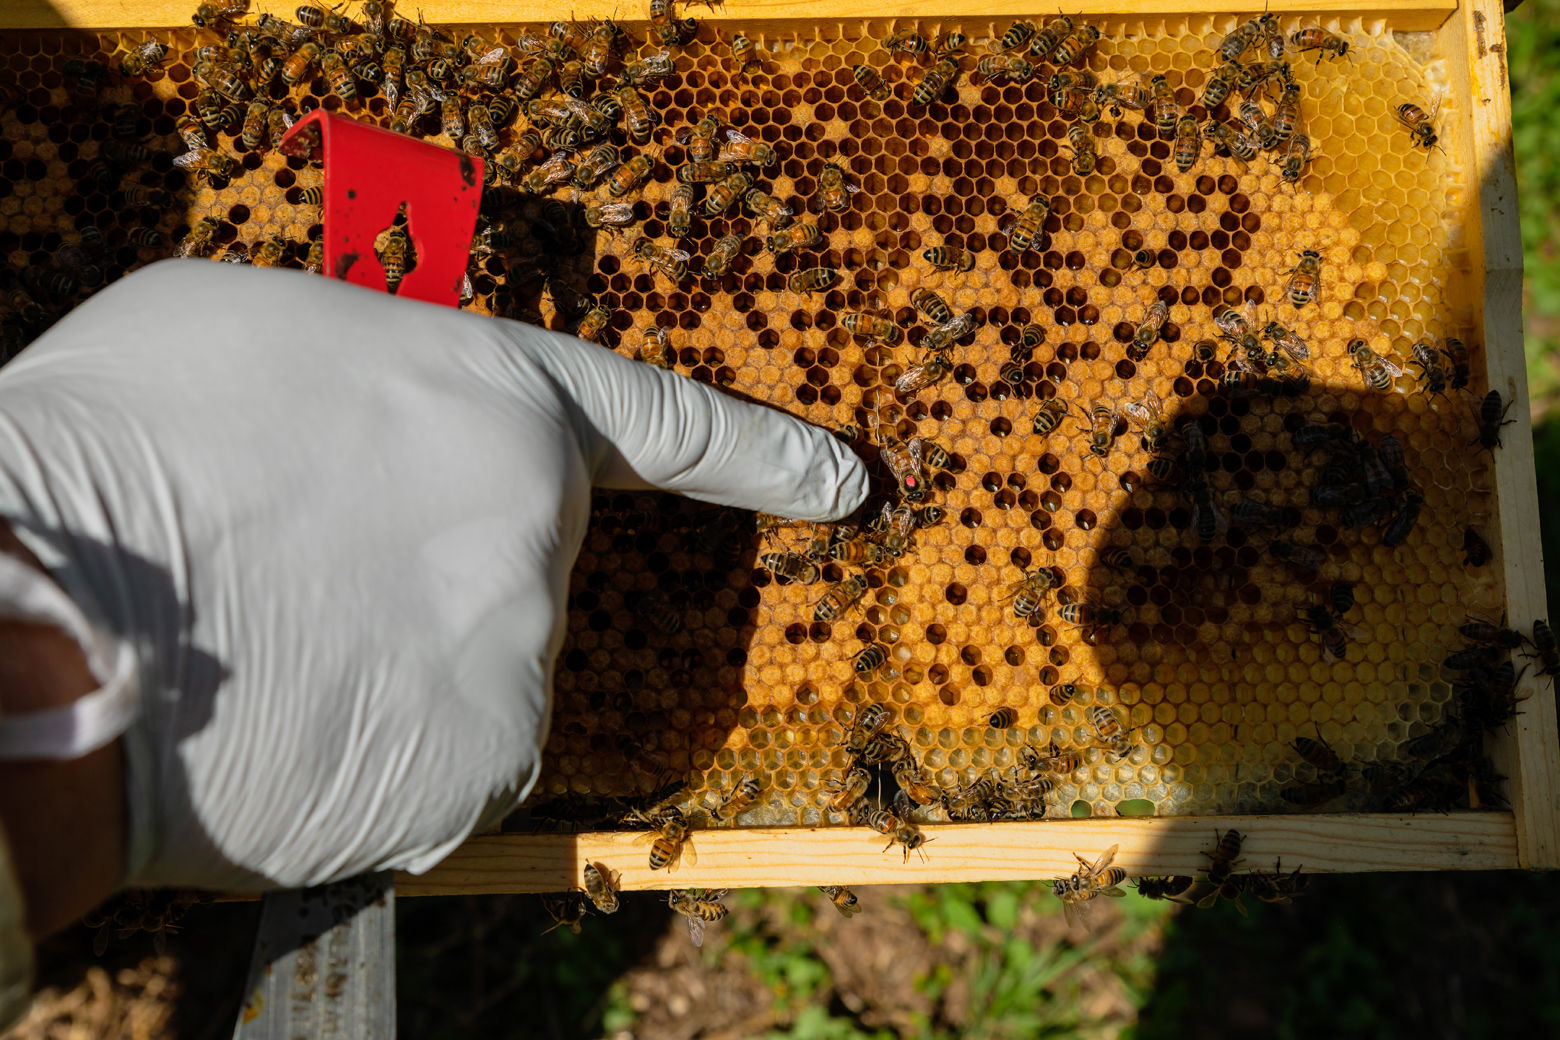 """You have to have an inspection done, you have to have your hives registered, so the inspector comes out and makes sure you have the right distance, the water source, the orientation, there are some basic rules,"" said beekeeper Kevin Platte, of keeping bees in D.C. (Courtesy Accor Hotels)"